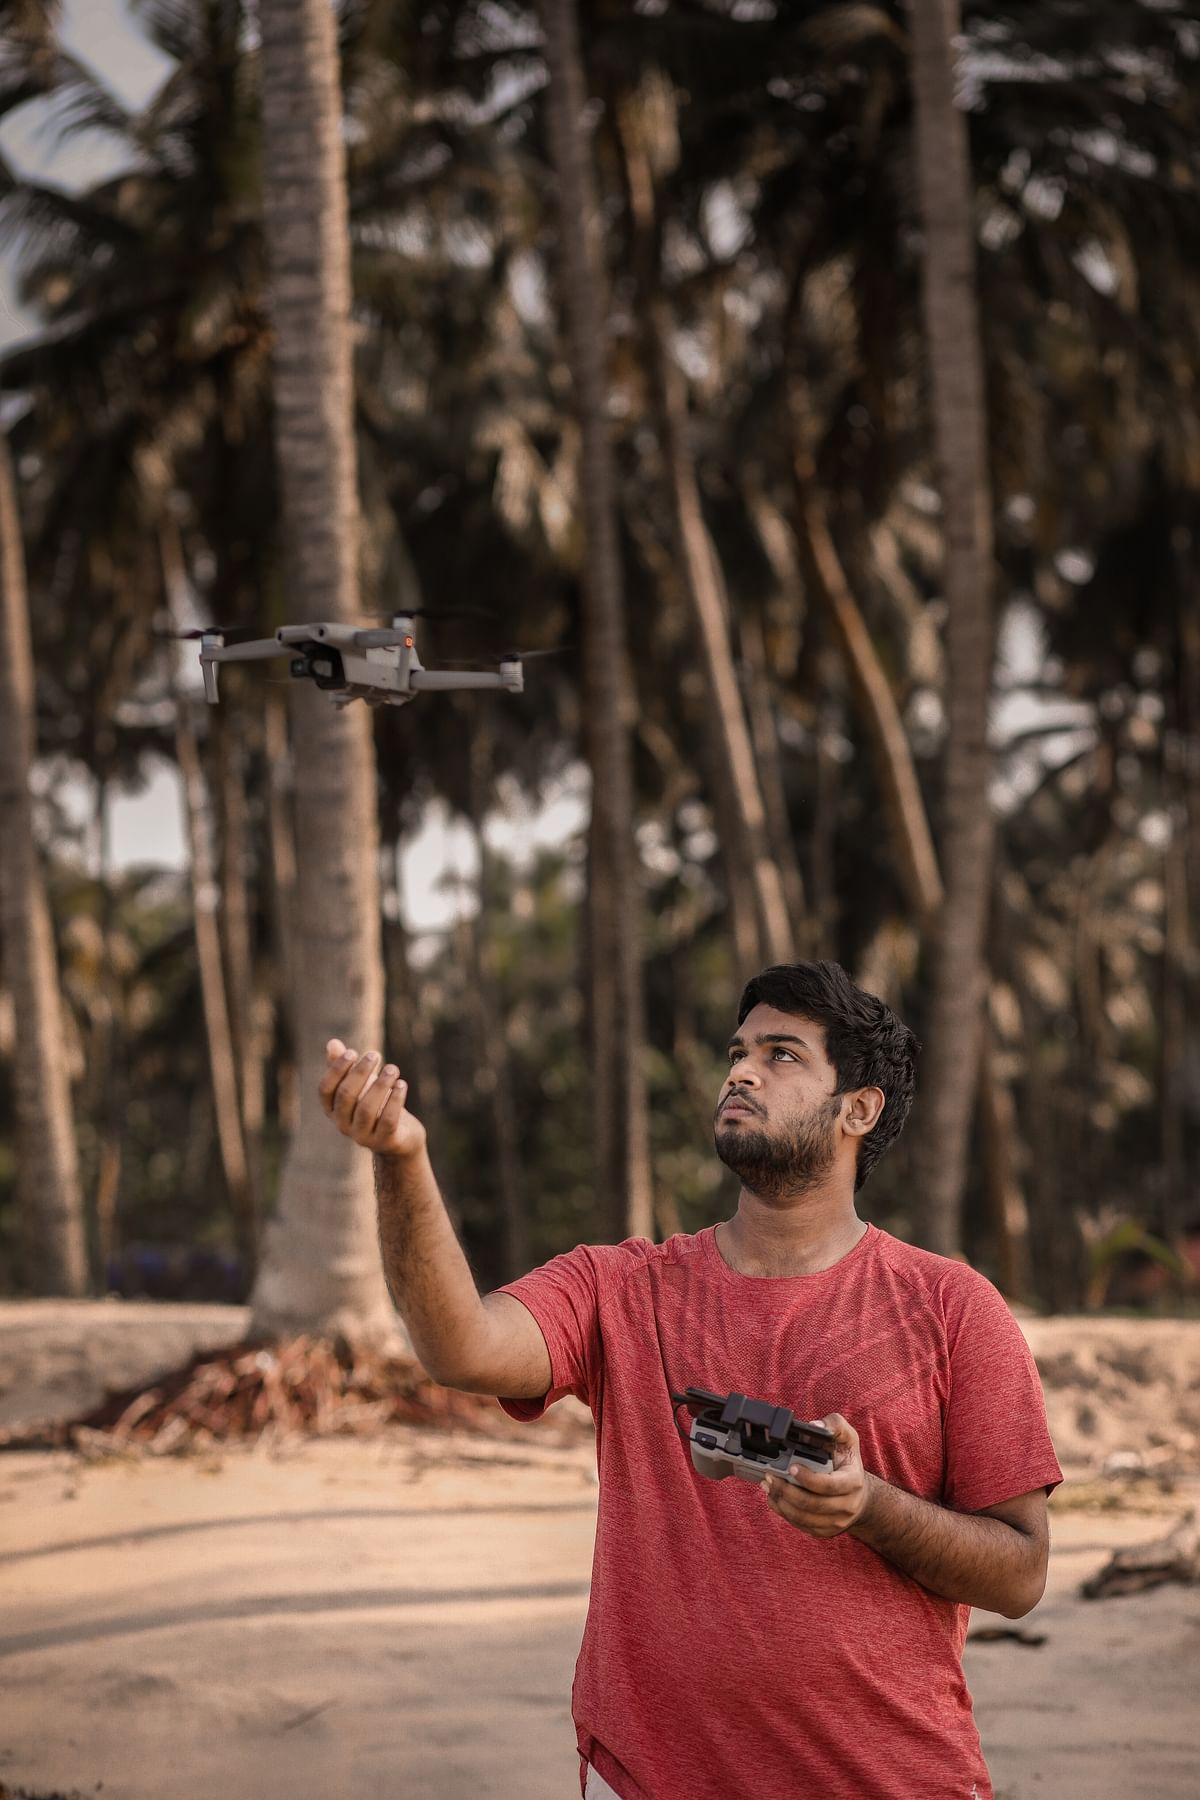 Devang Subil with his drone